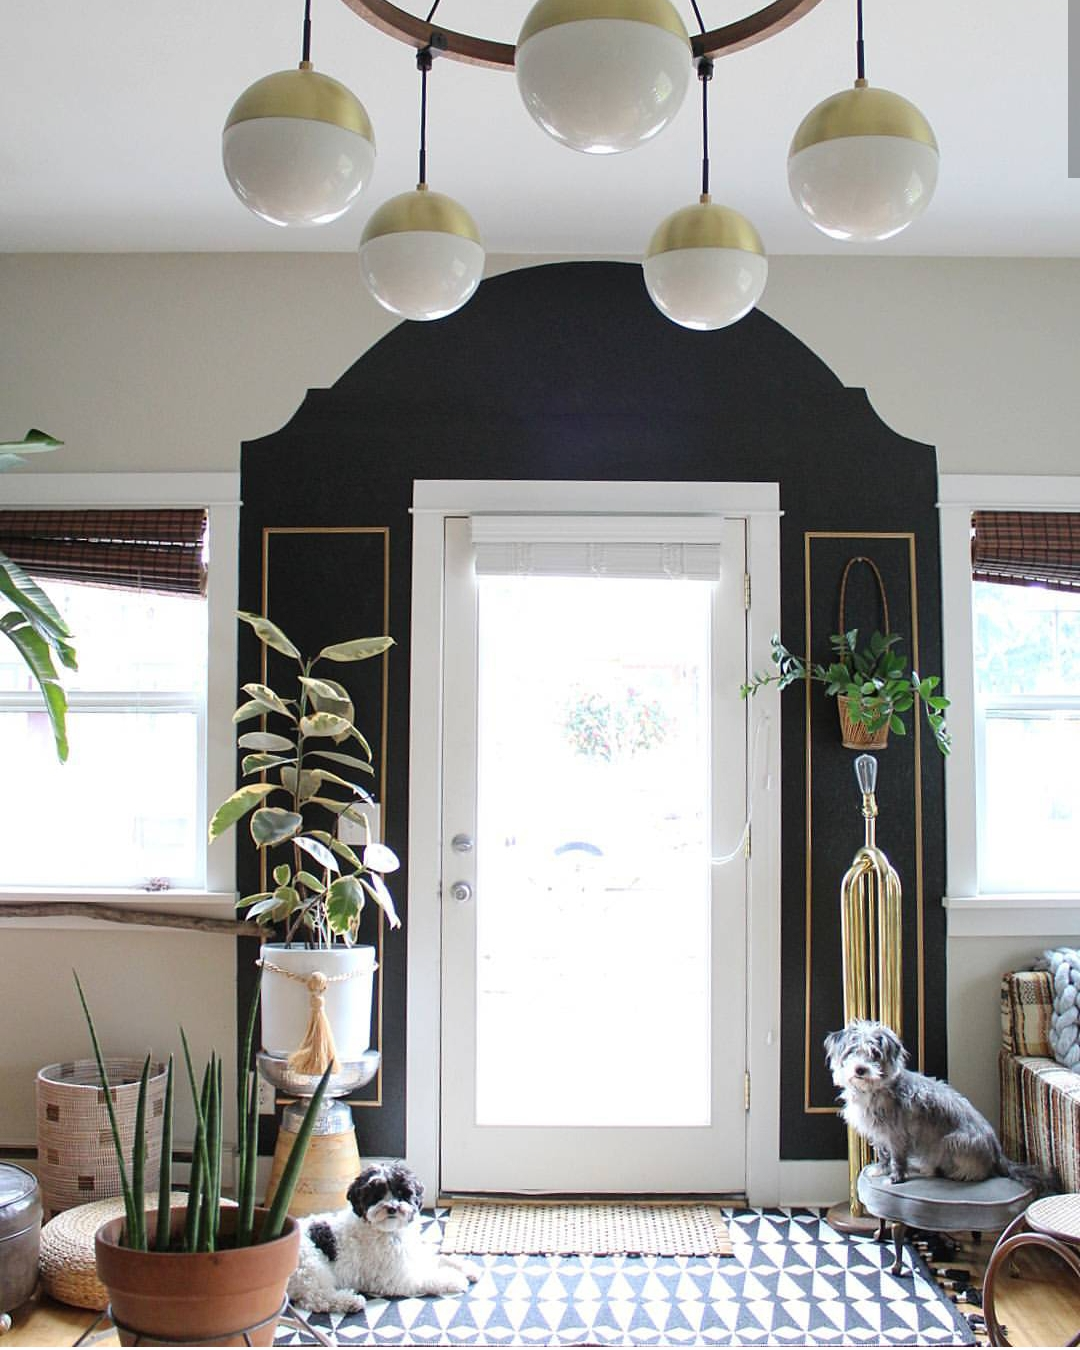 Painting around the exterior of the door created an interesting focal point and made the entrance feel larger.